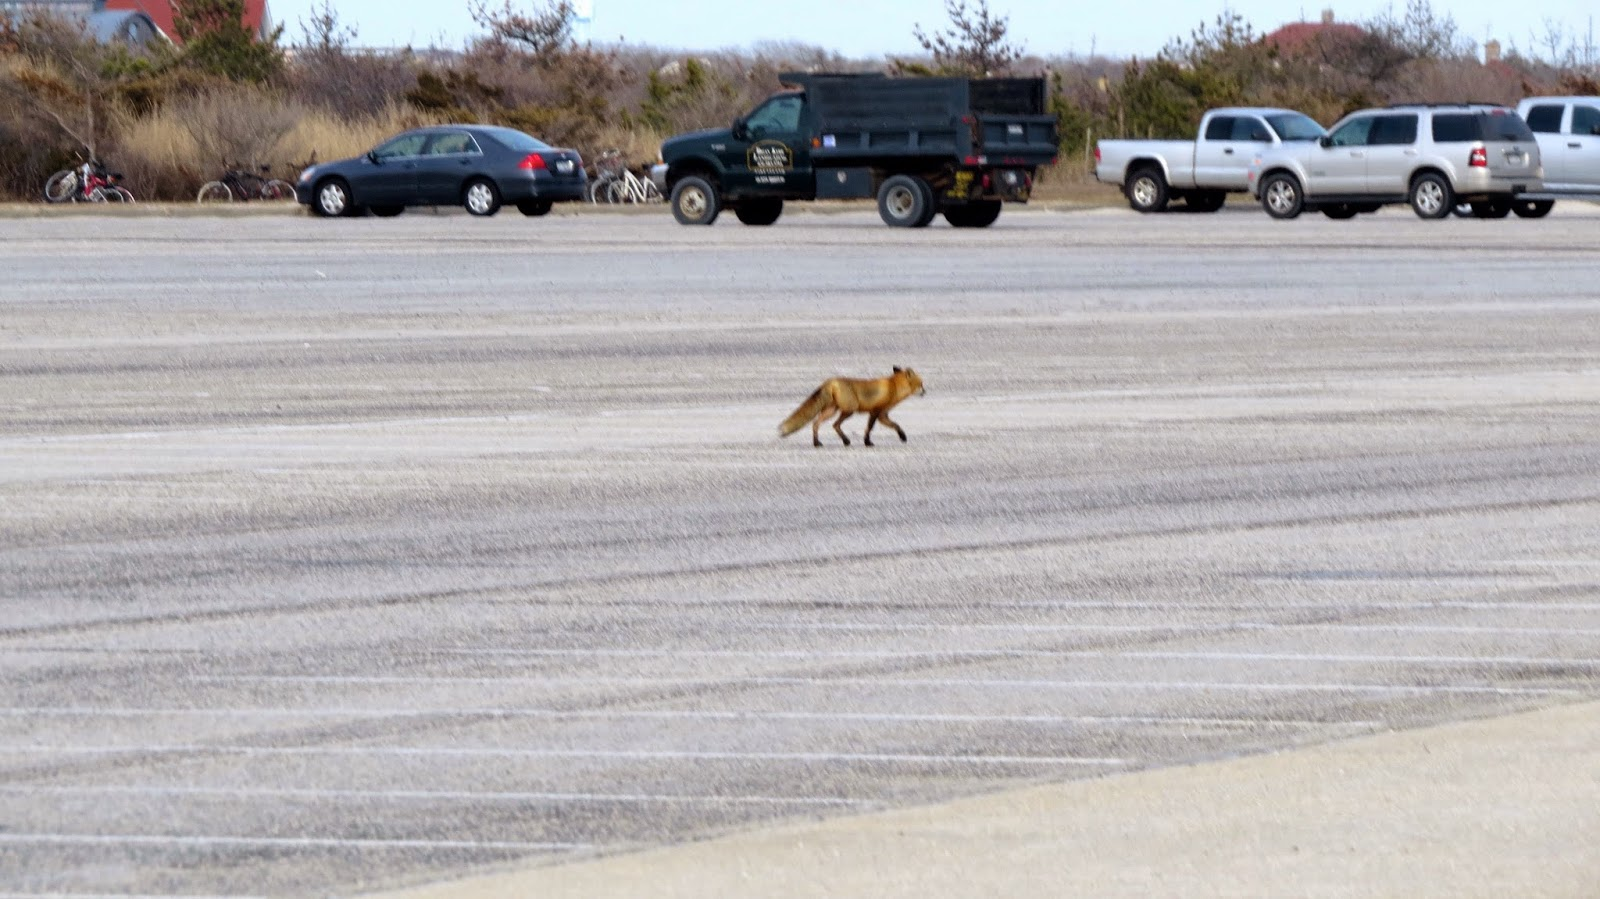 Fantastic-Mister-Fox-Takes-Over-the-Robert-Moses-Parking-Lot-at-Field-Five